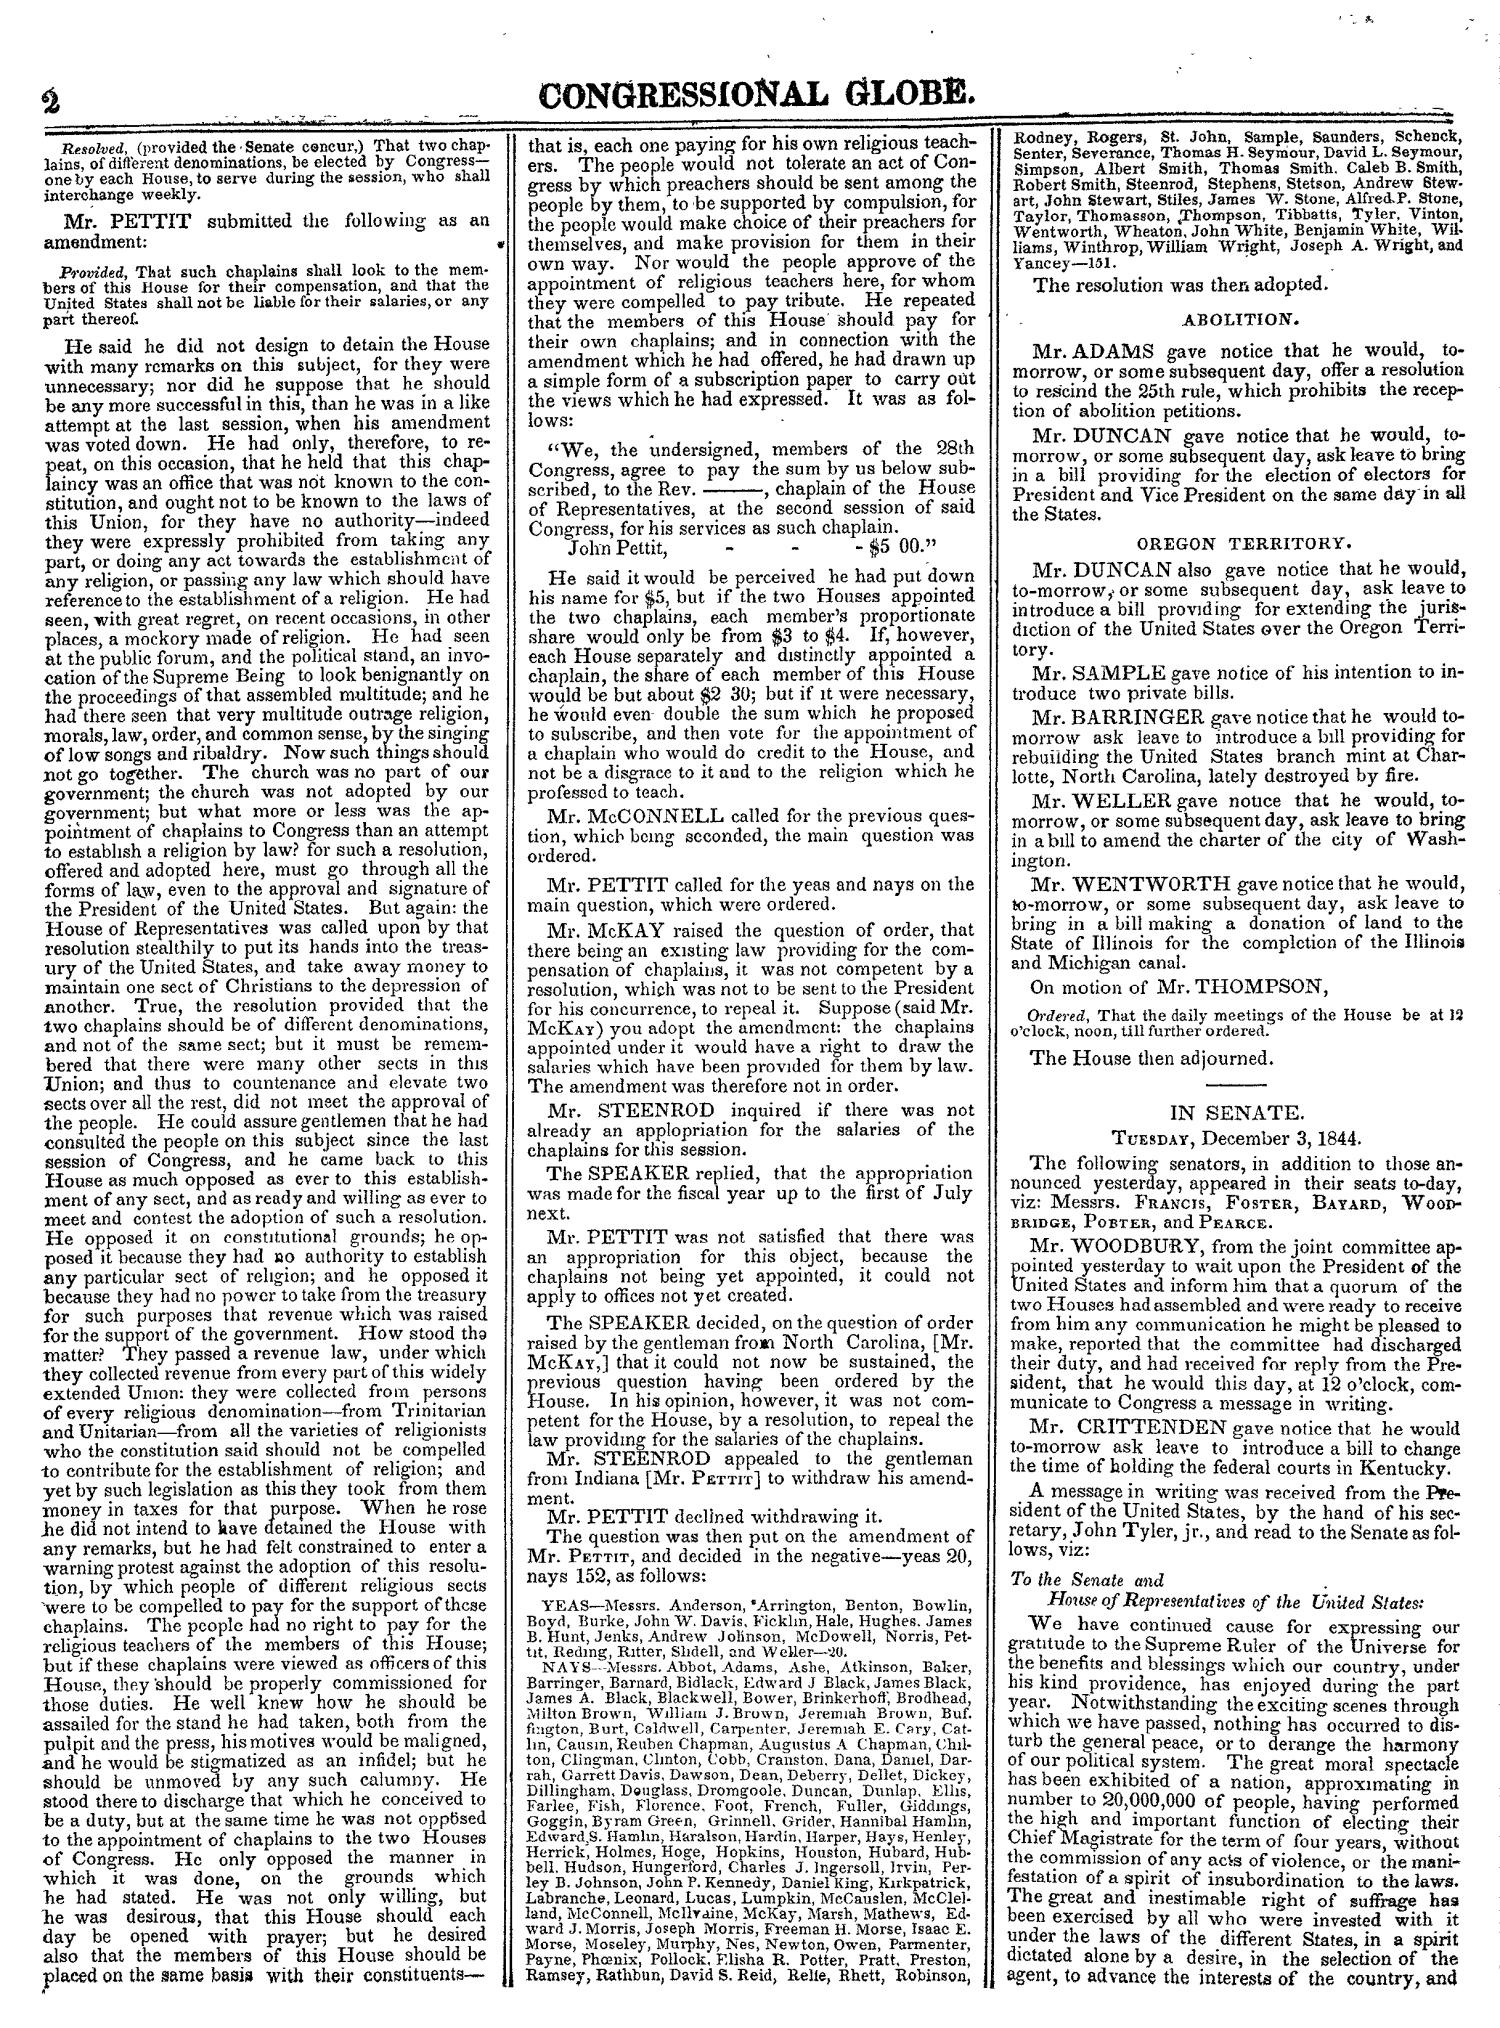 The Congressional Globe, Volume 14: Twenty-Eighth Congress, Second Session                                                                                                      2